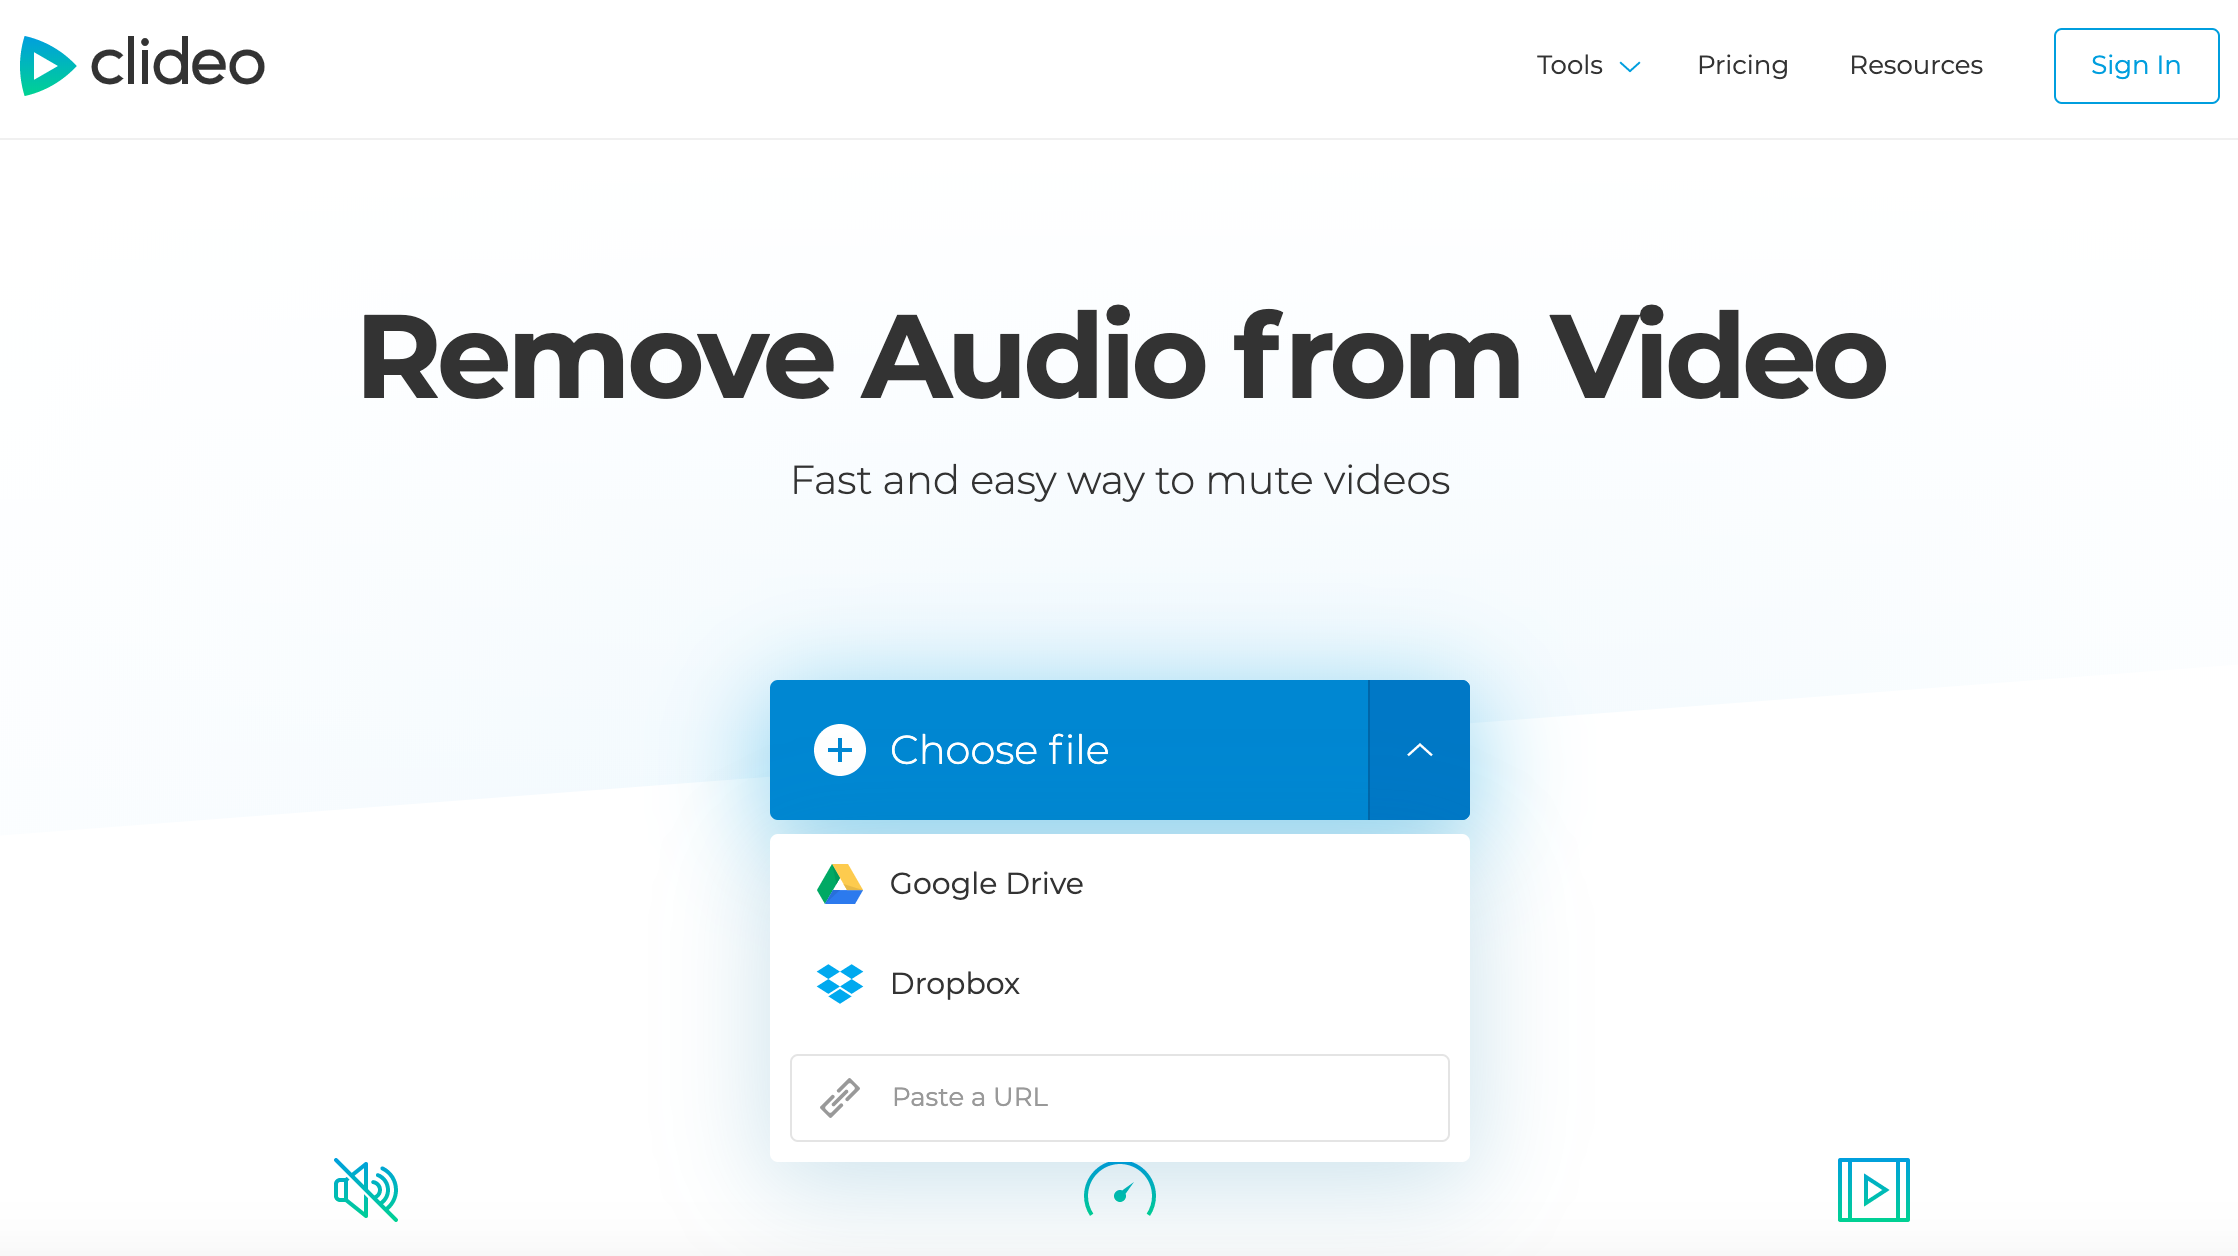 Click the blue button and add a video to delete audio from it